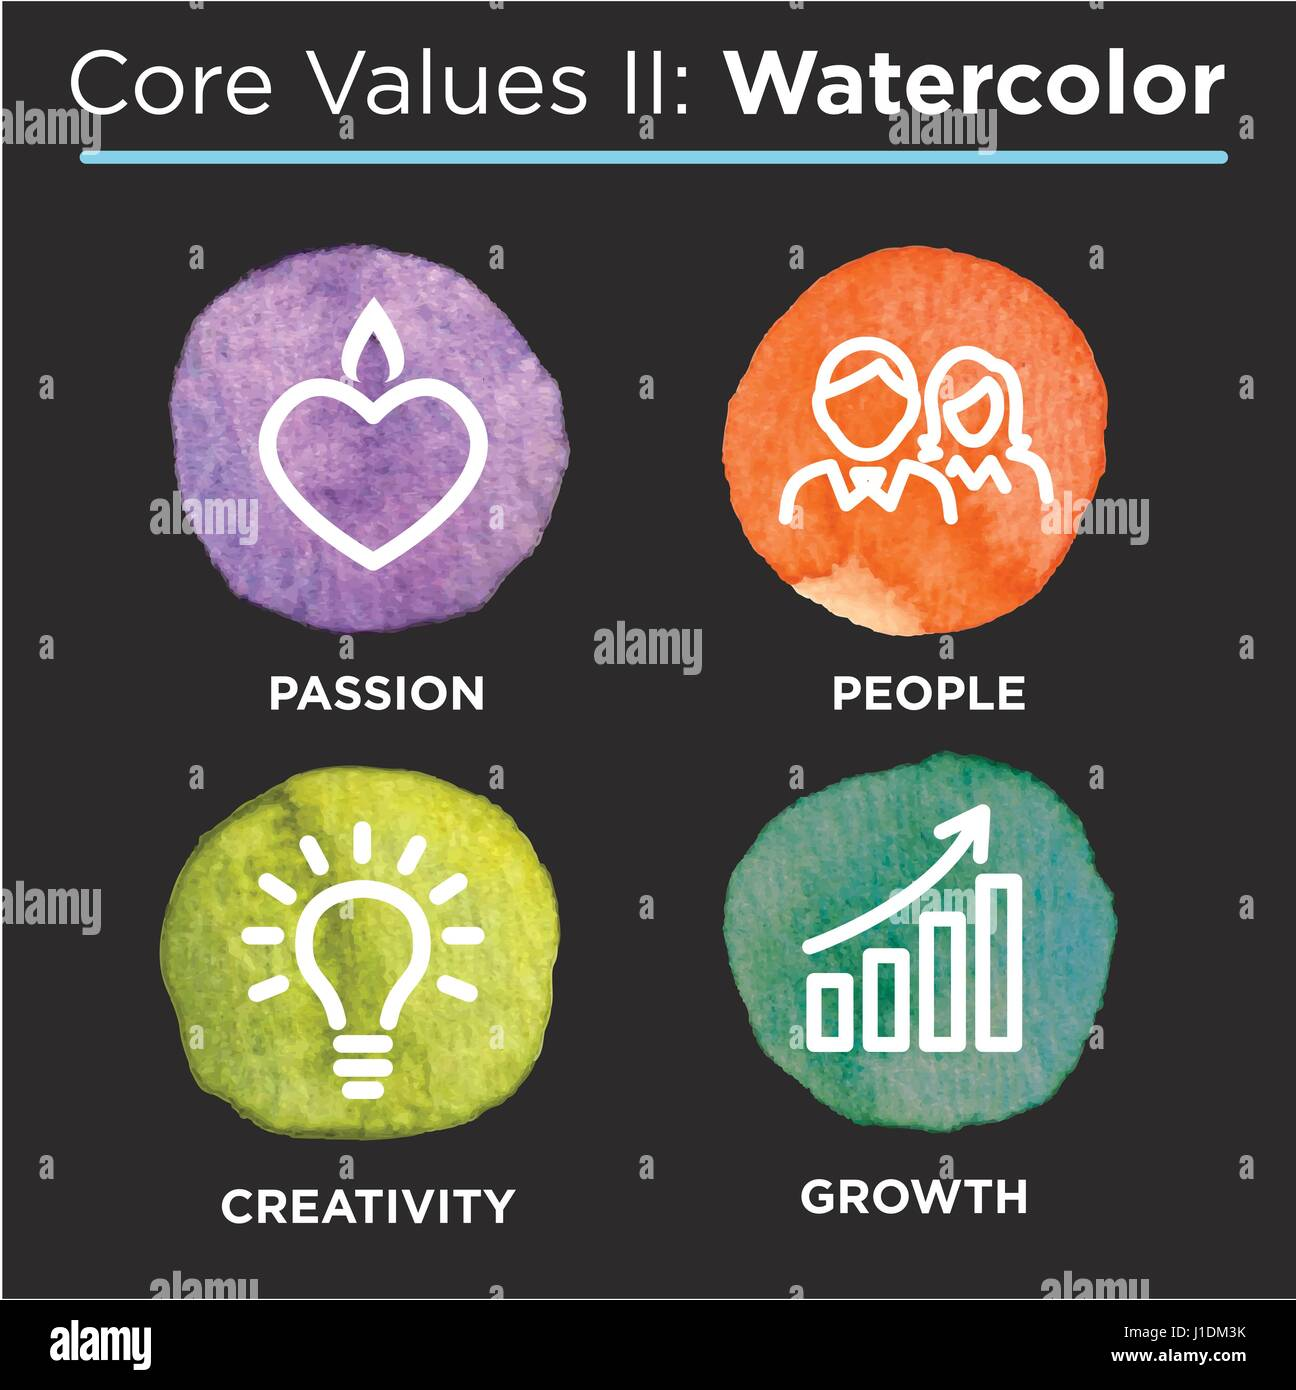 Company Core Values Outline Icons for Websites or Infographics - Stock Vector